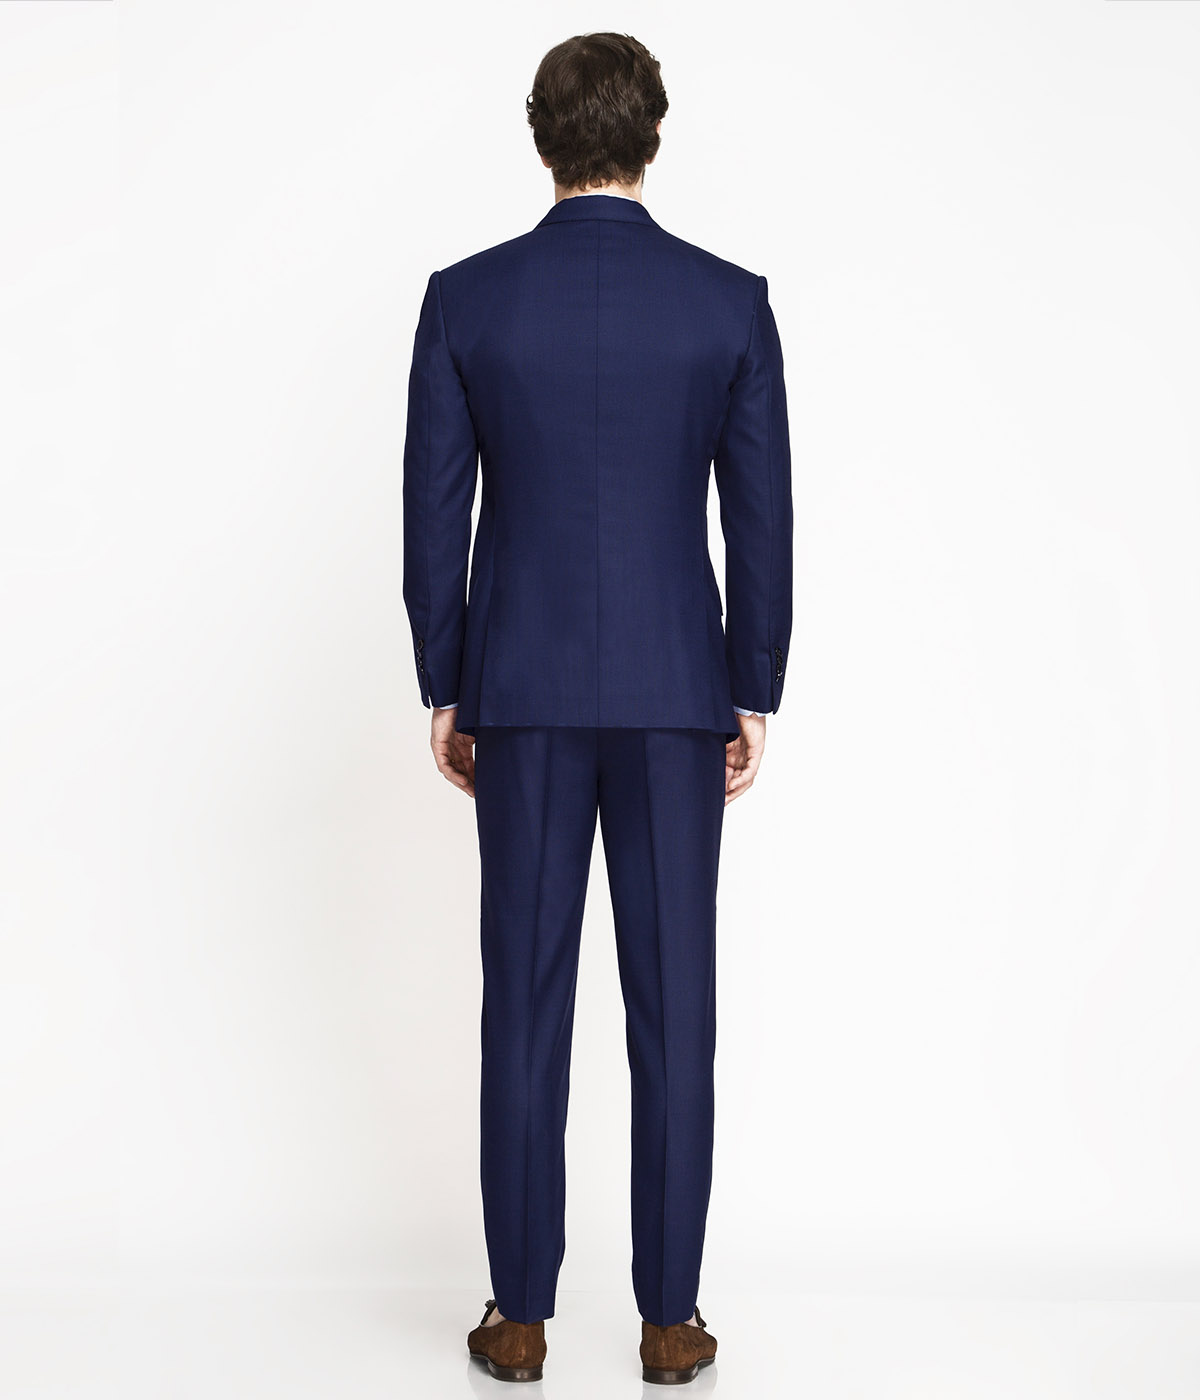 Lincoln Square Blue Birdseye Suit-mbview-2